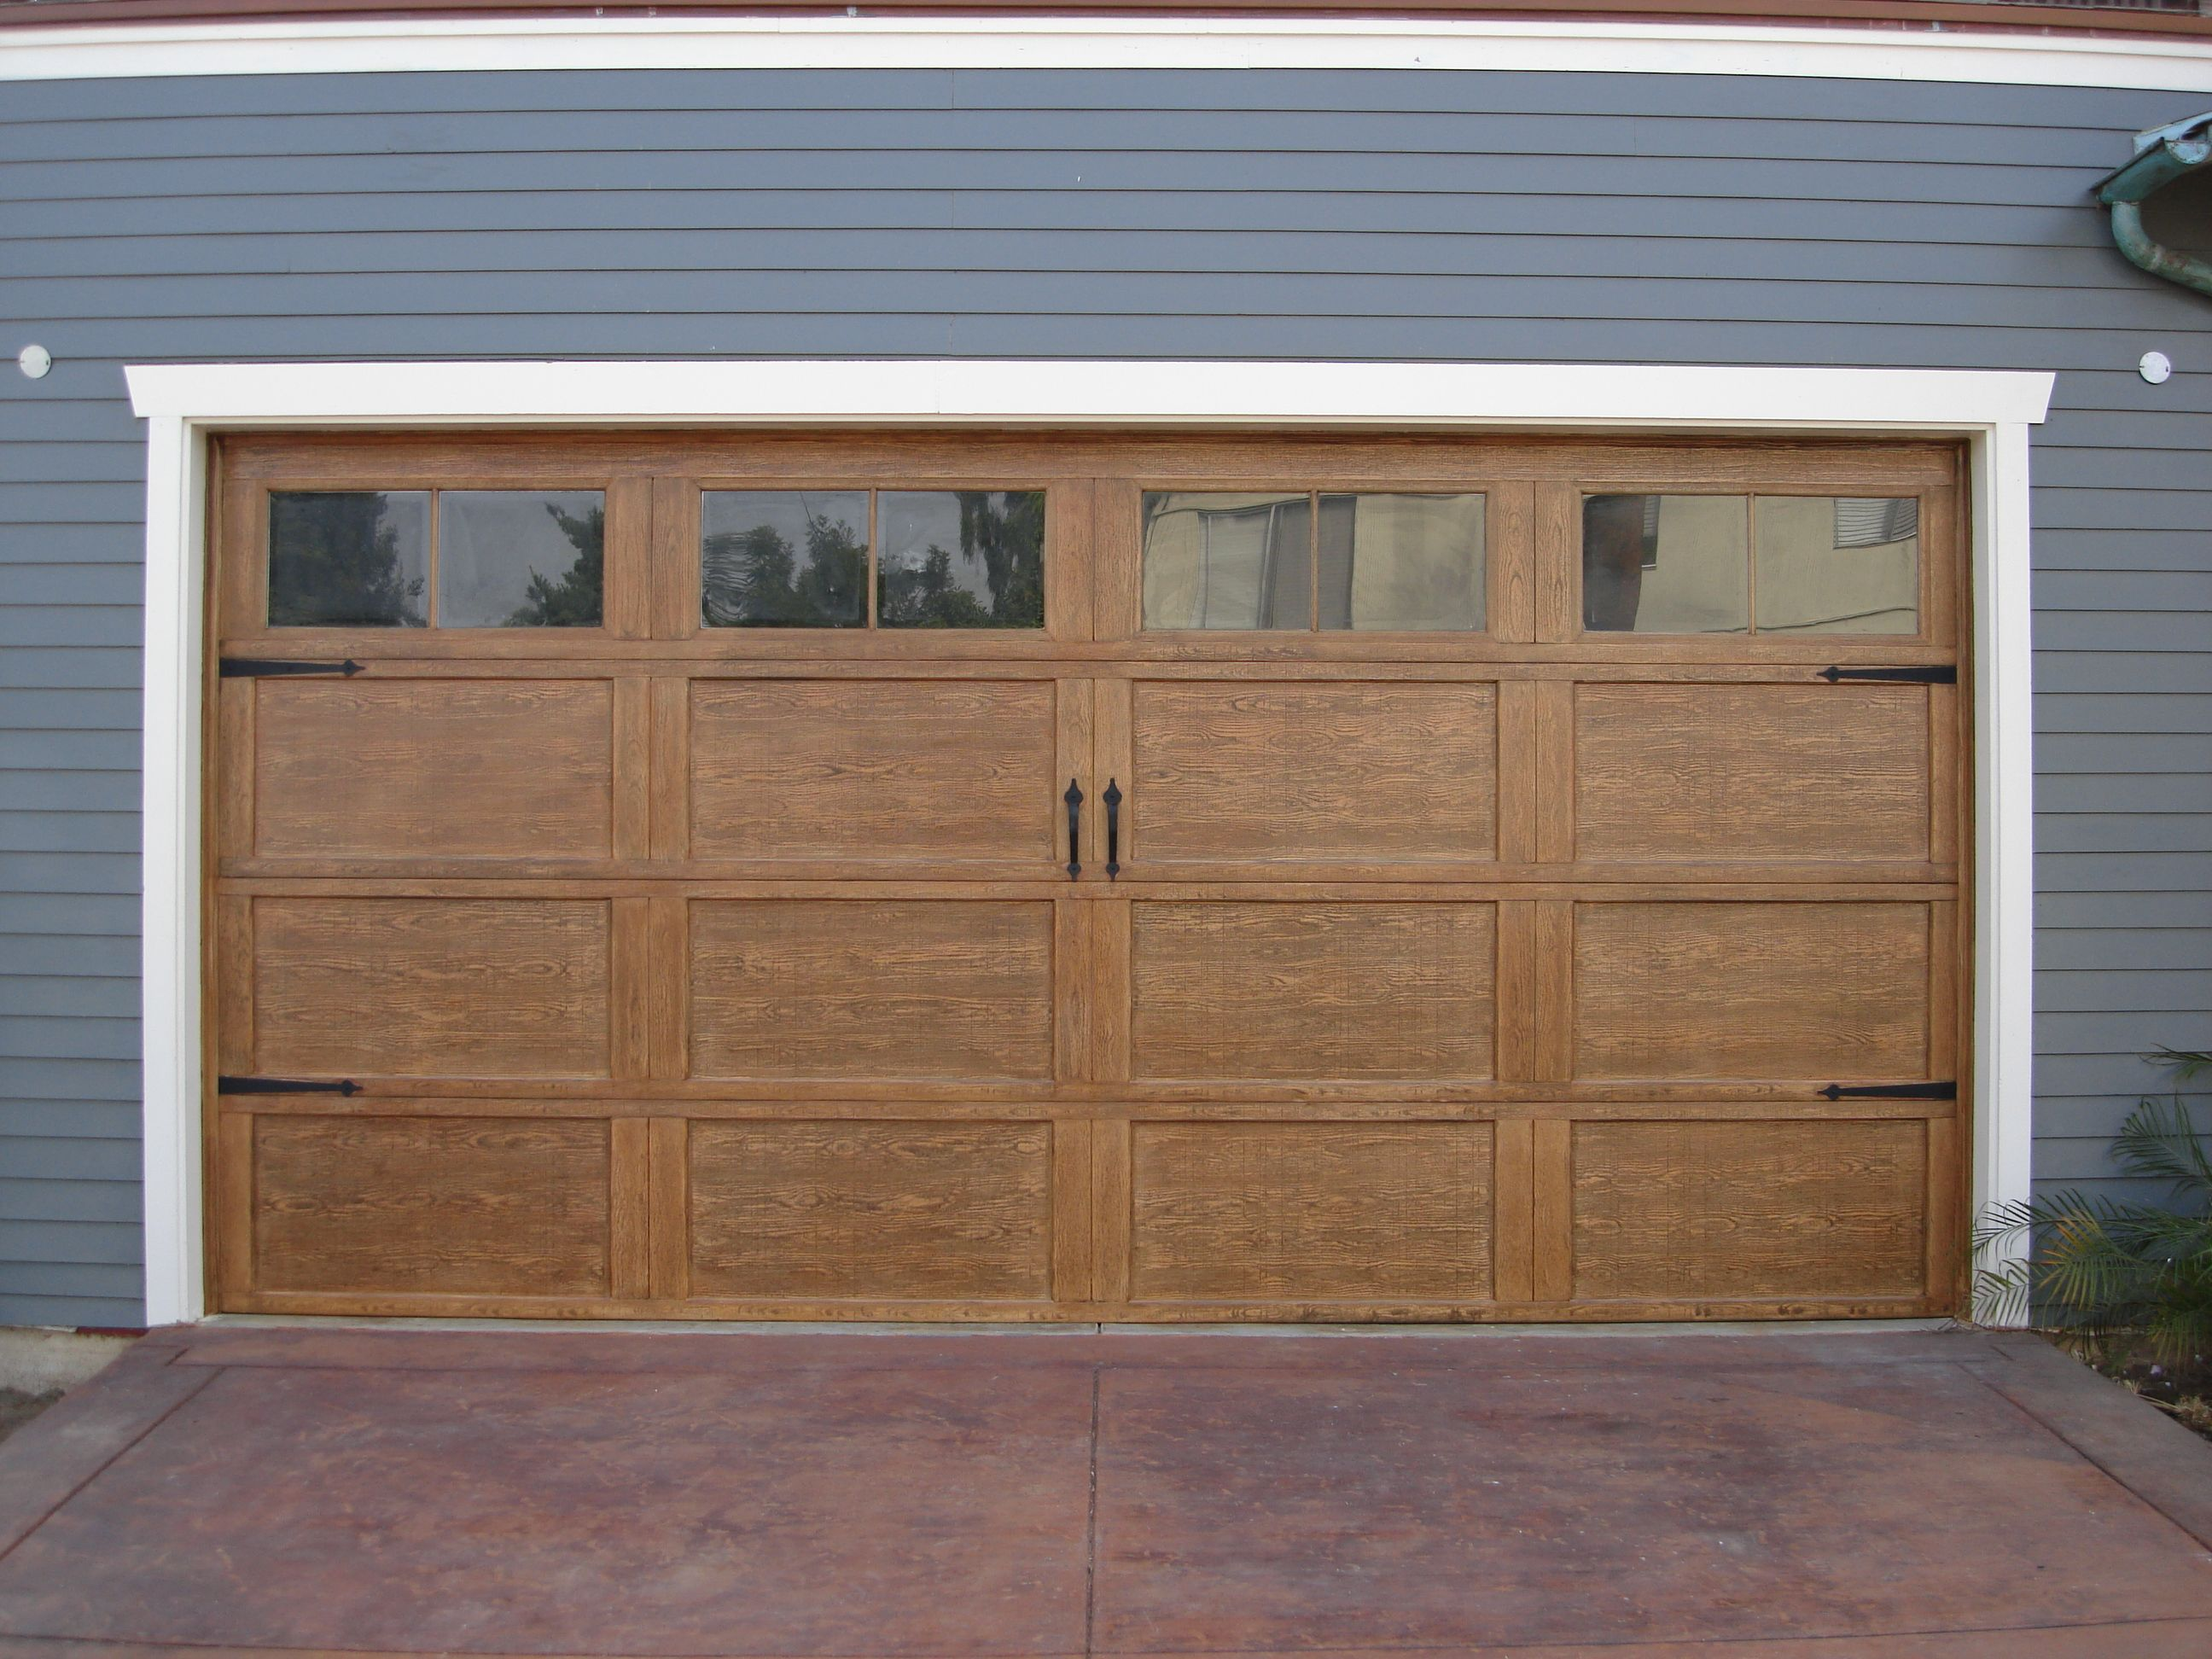 Garage door interior trim - Garage Door Trim